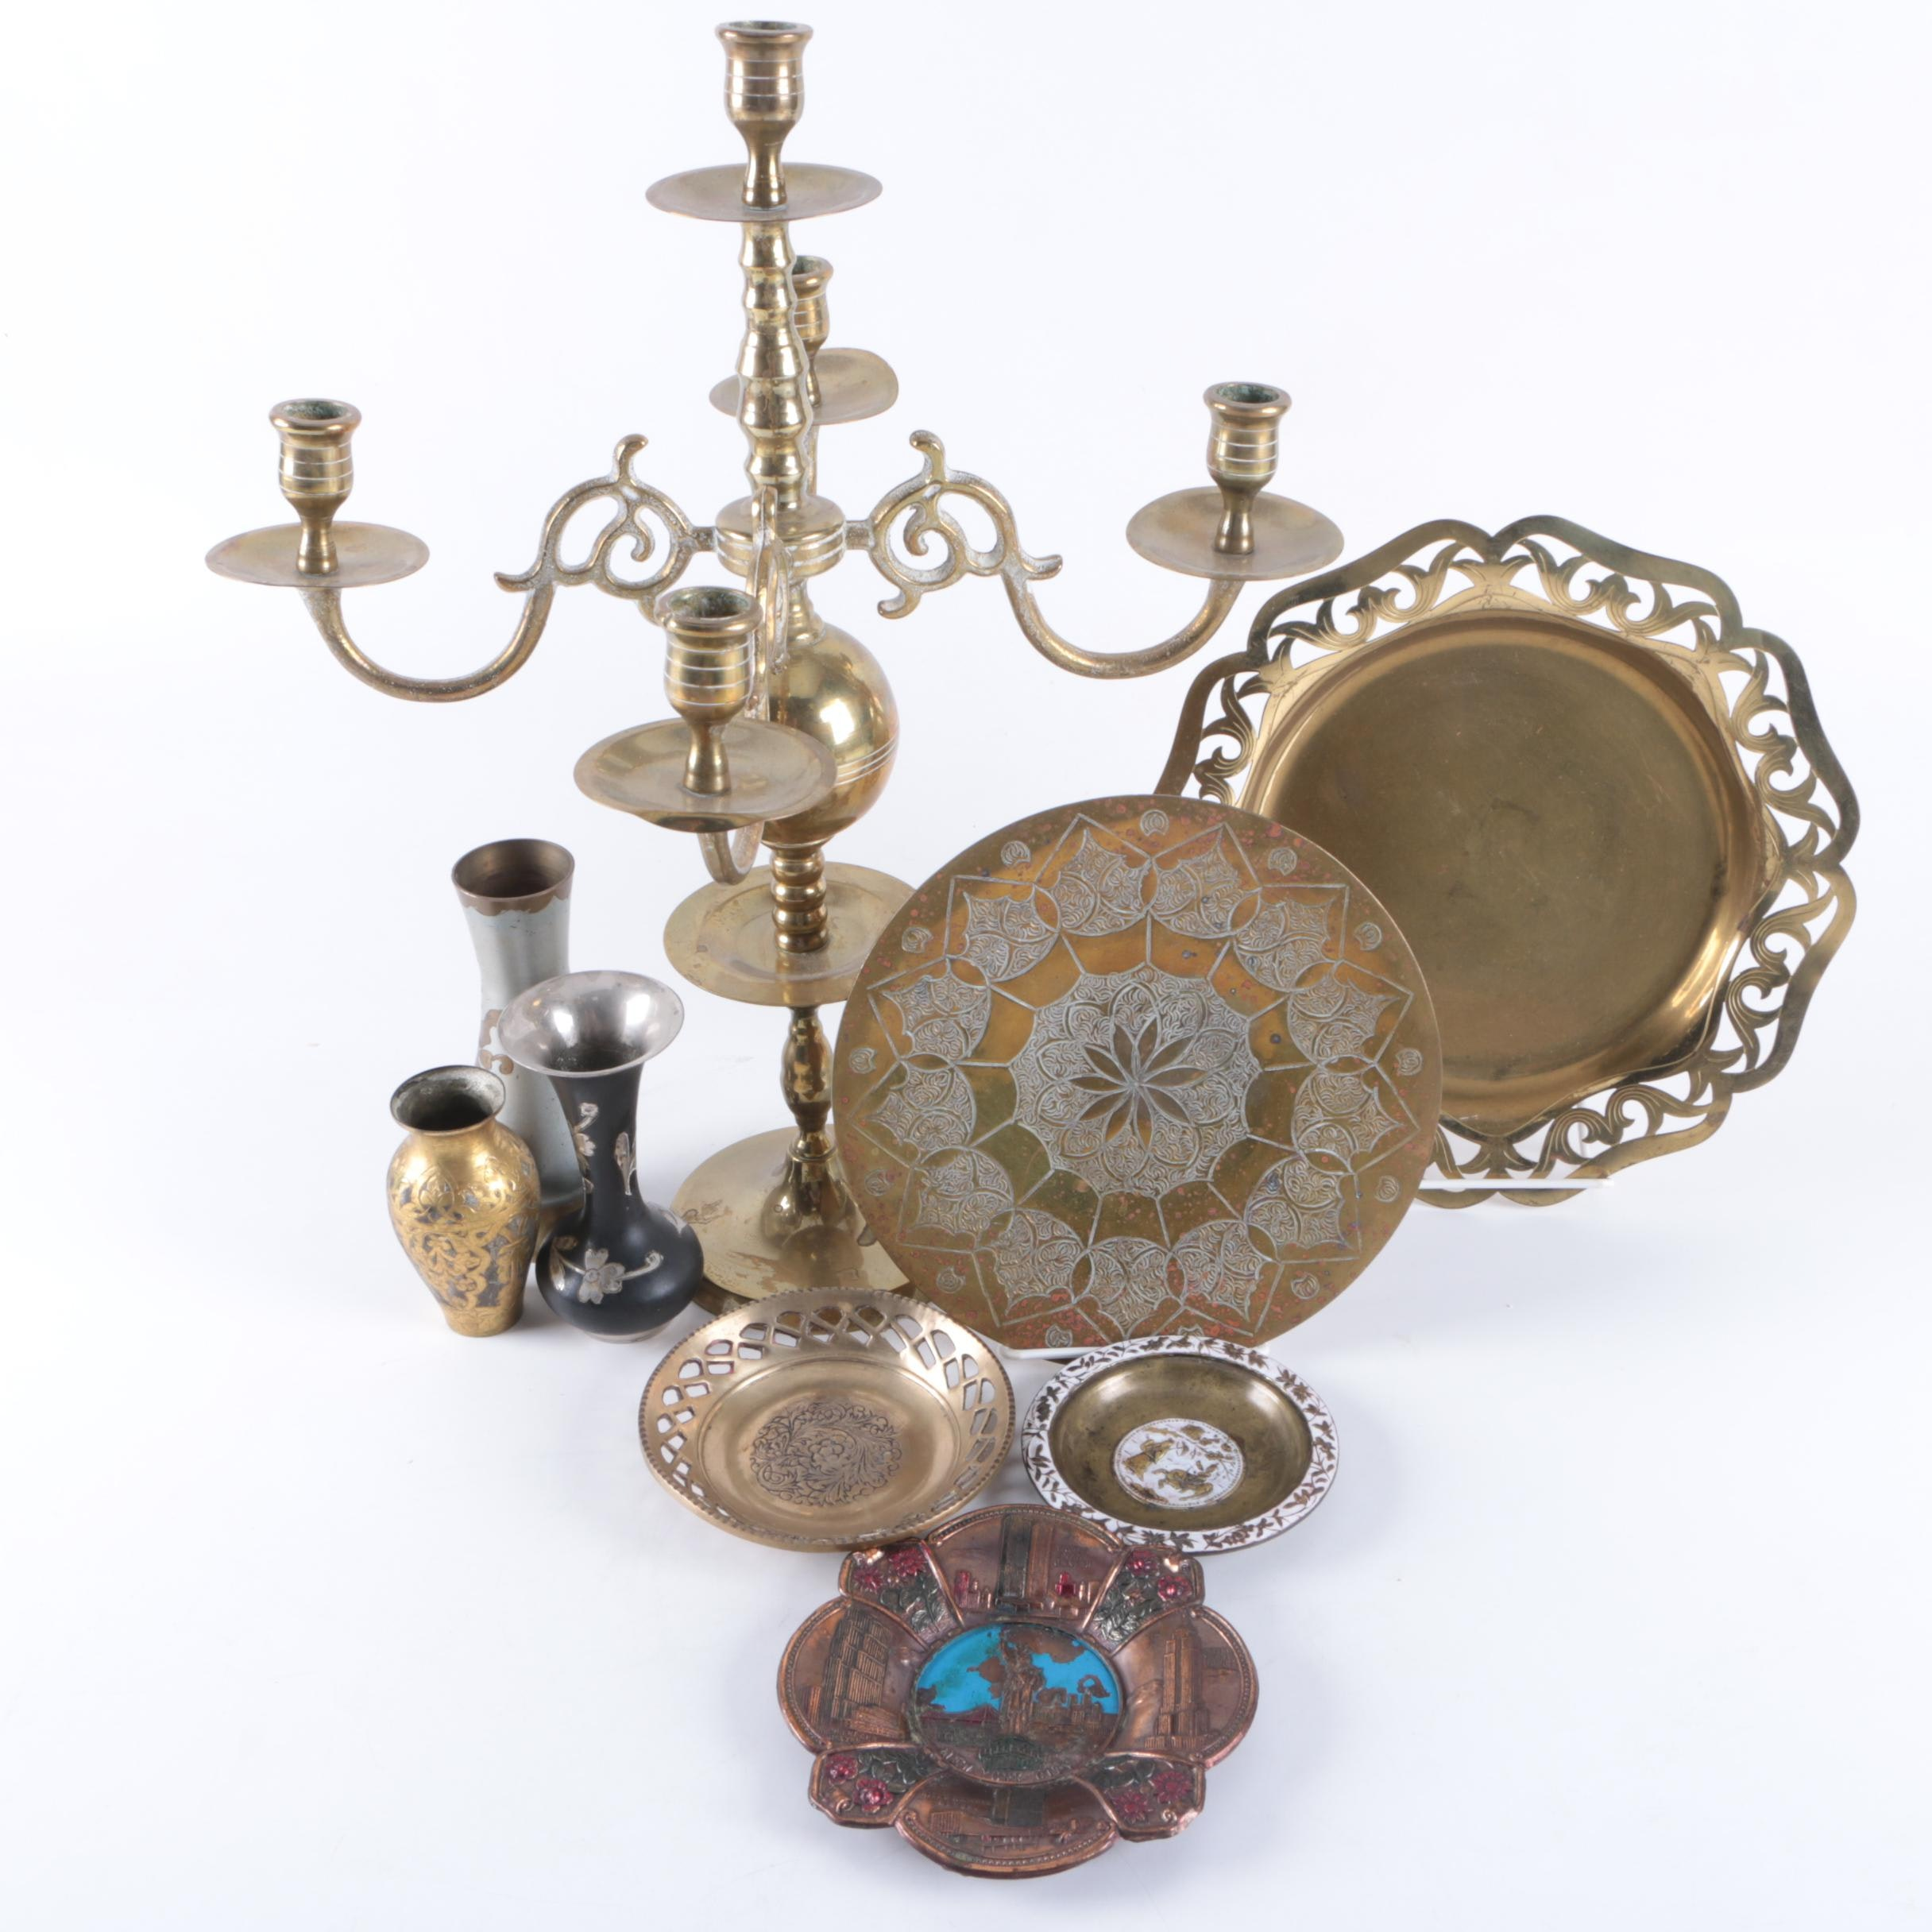 Brass Candelabrum with a Group of Brass-Tone Plates and Vases